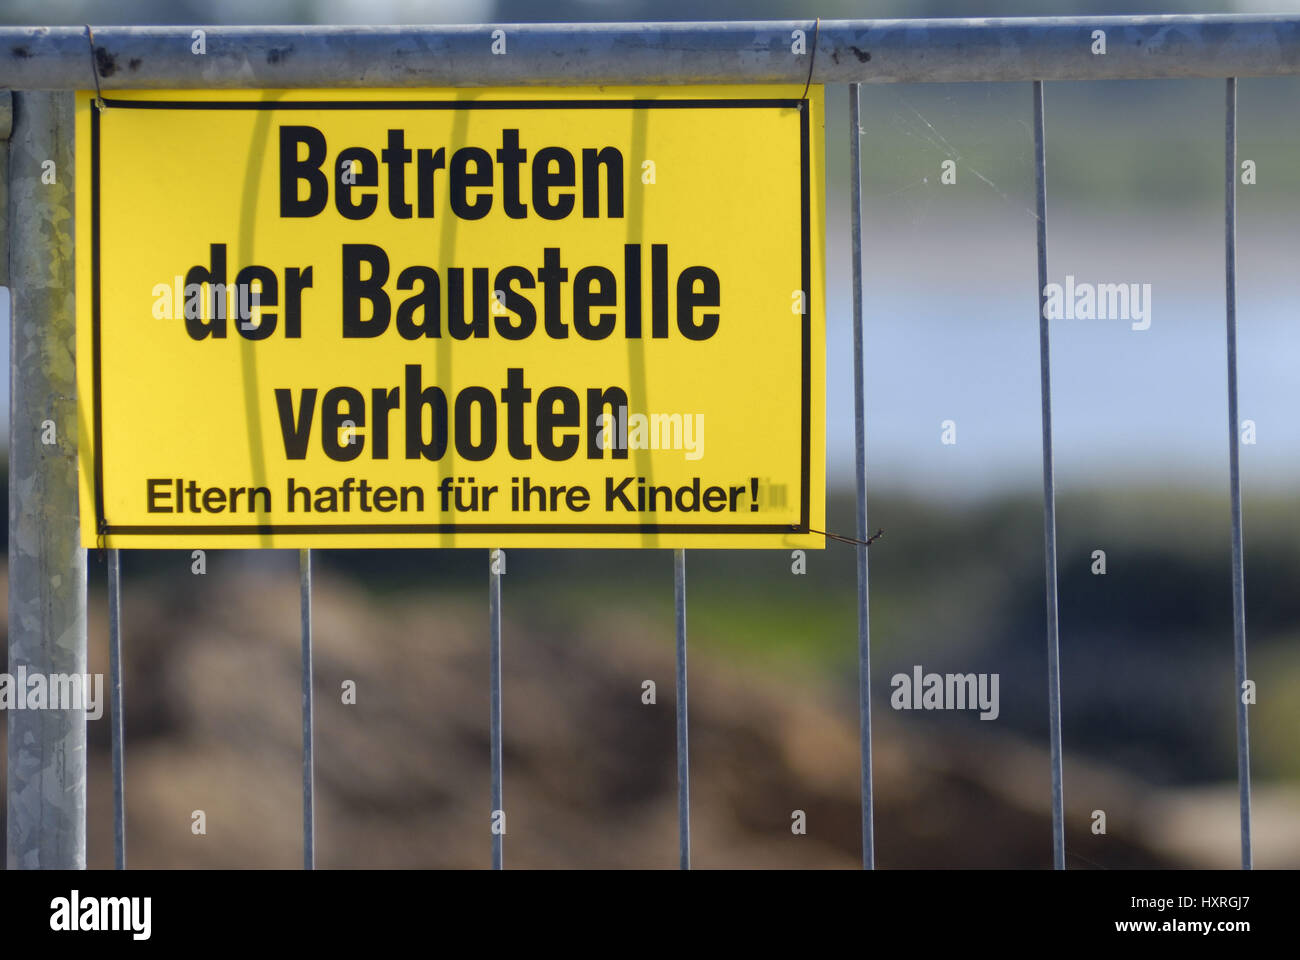 Entrance of the building site forbade, Betreten der Baustelle verboten Stock Photo